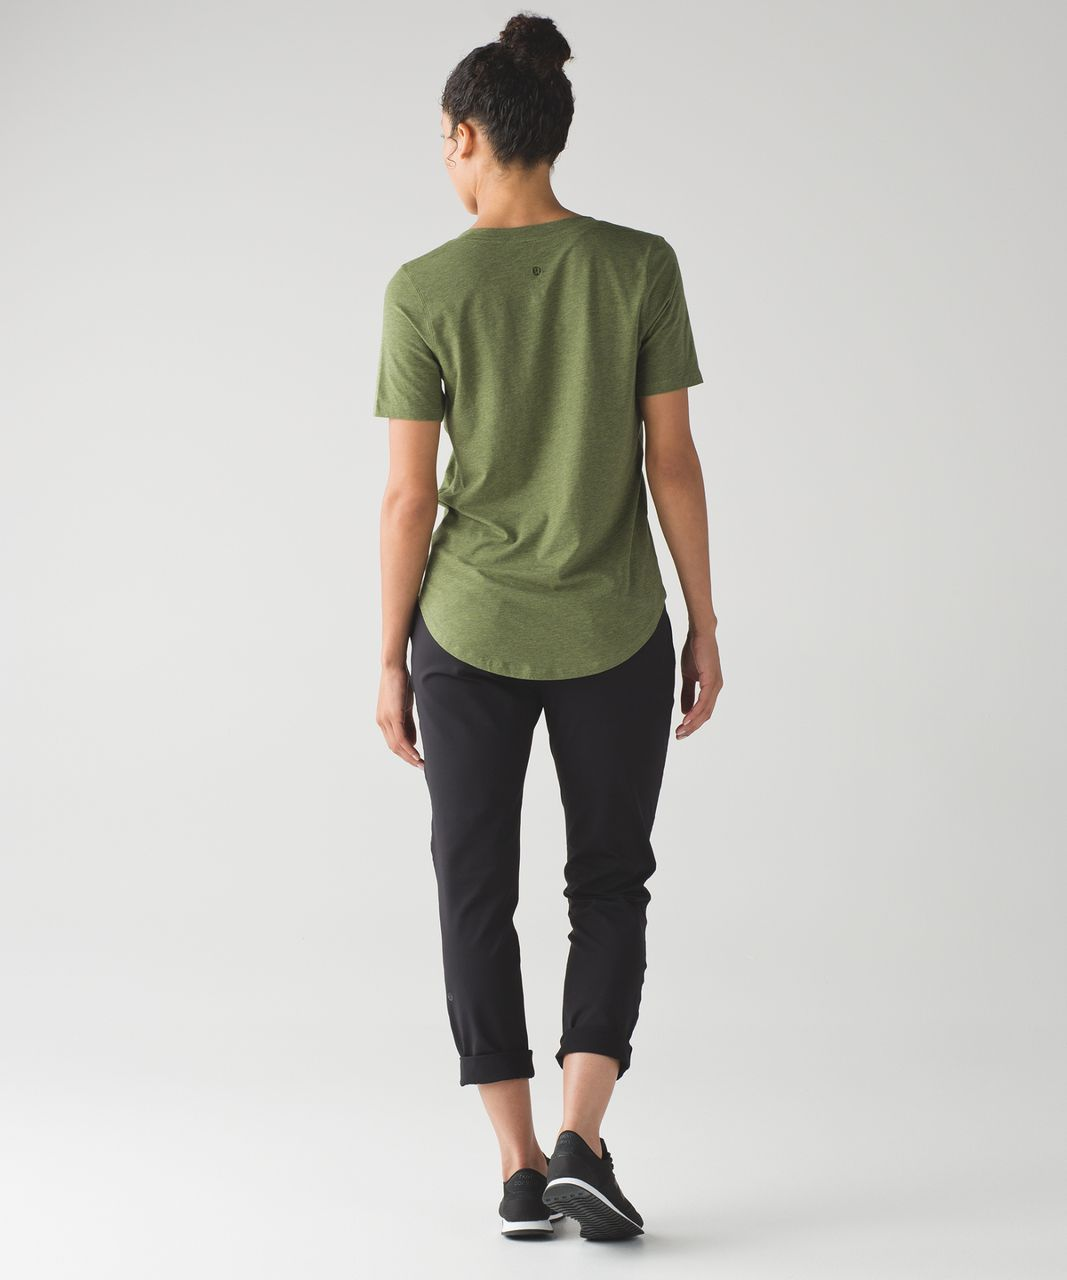 Lululemon Love Tee III - Heathered Brave Olive